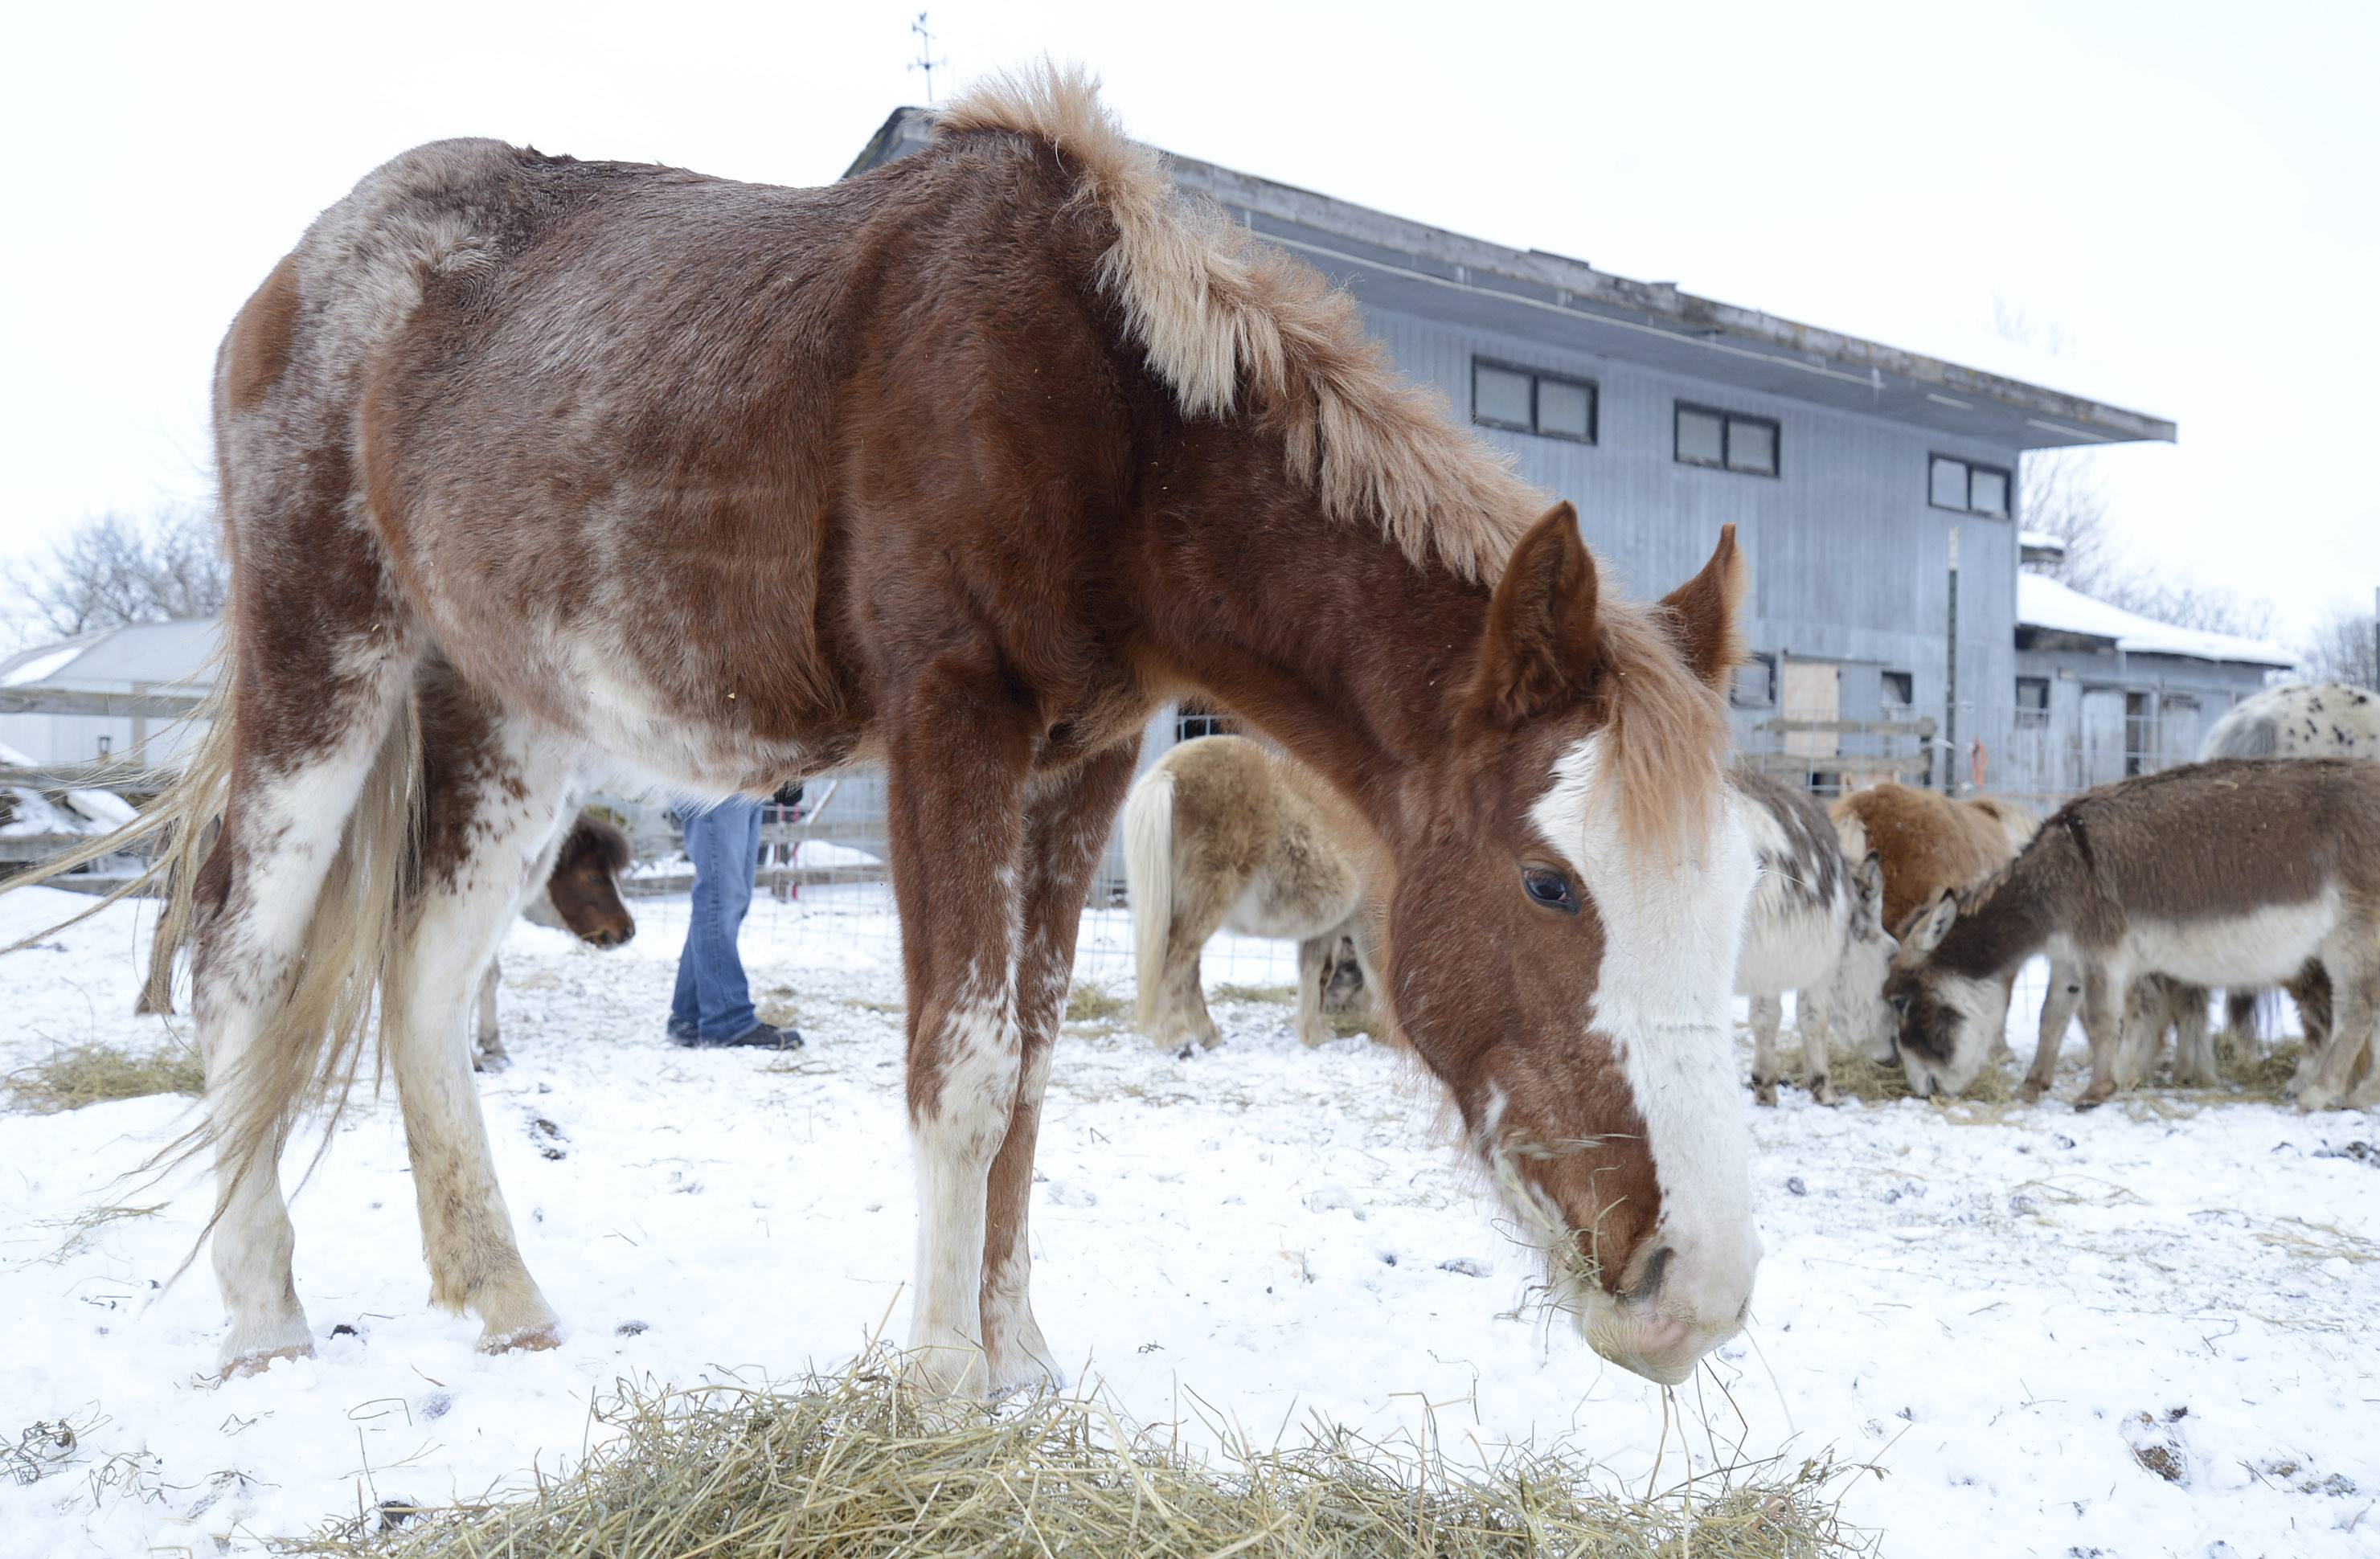 A horse feeds on hay at a farm in Hampshire March 5. Kane County animal control officials took over care of it and dozens of other animals last week, and their owner has been charged with animal cruelty and failure to provide proper care.